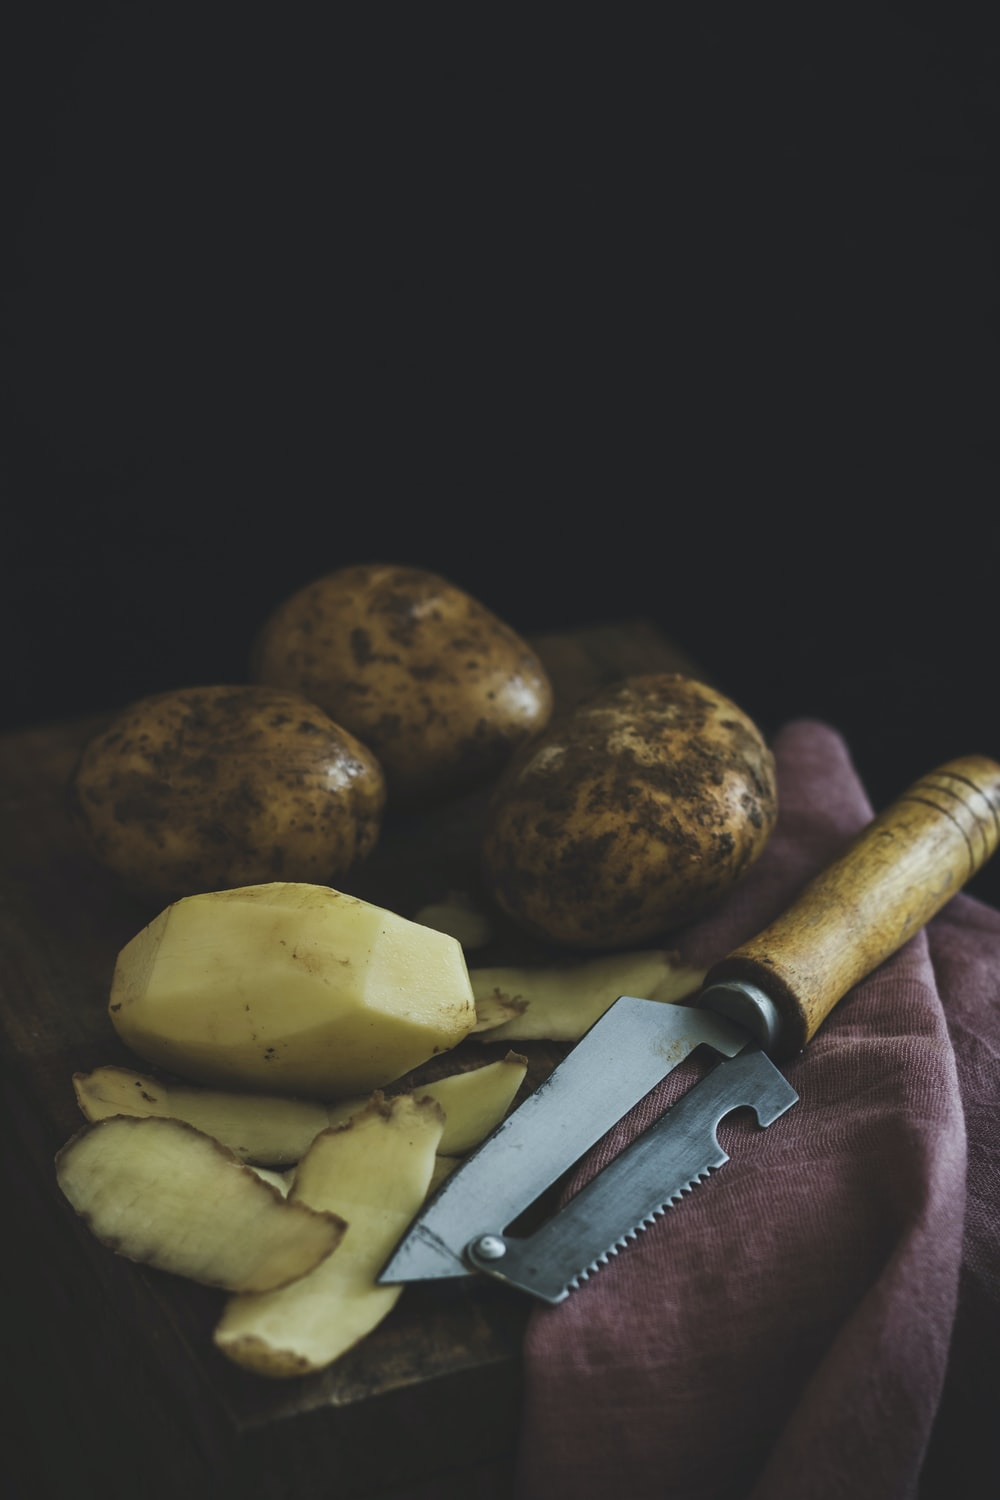 peeled and unpeeled potatoes on top of wooden table